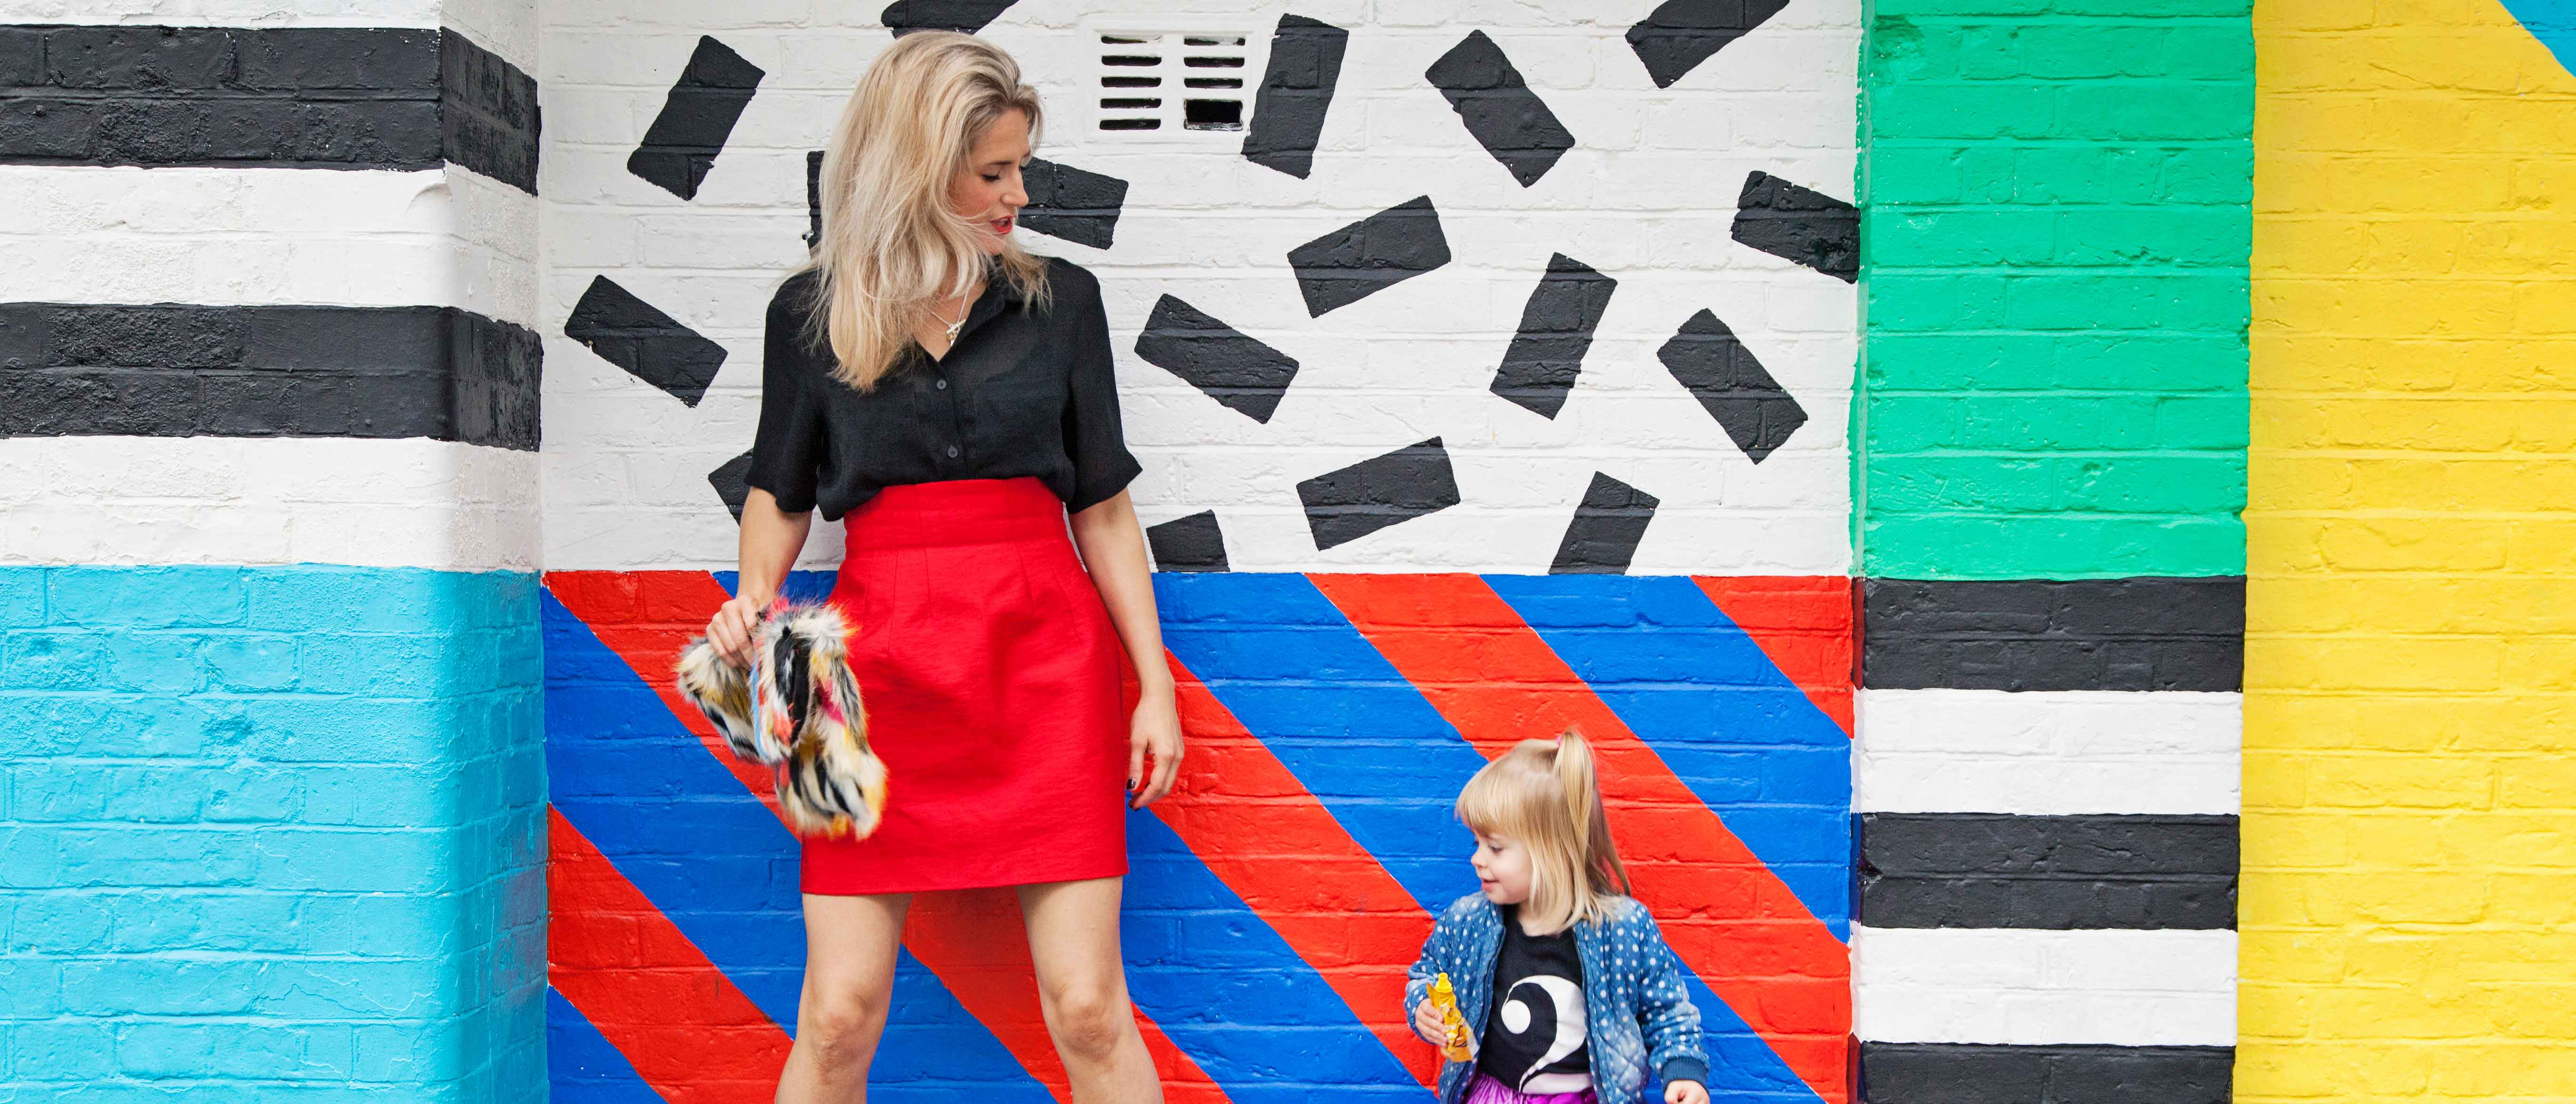 Funny, Fashionable & All About Flexible Working: Meet Anna Whitehouse